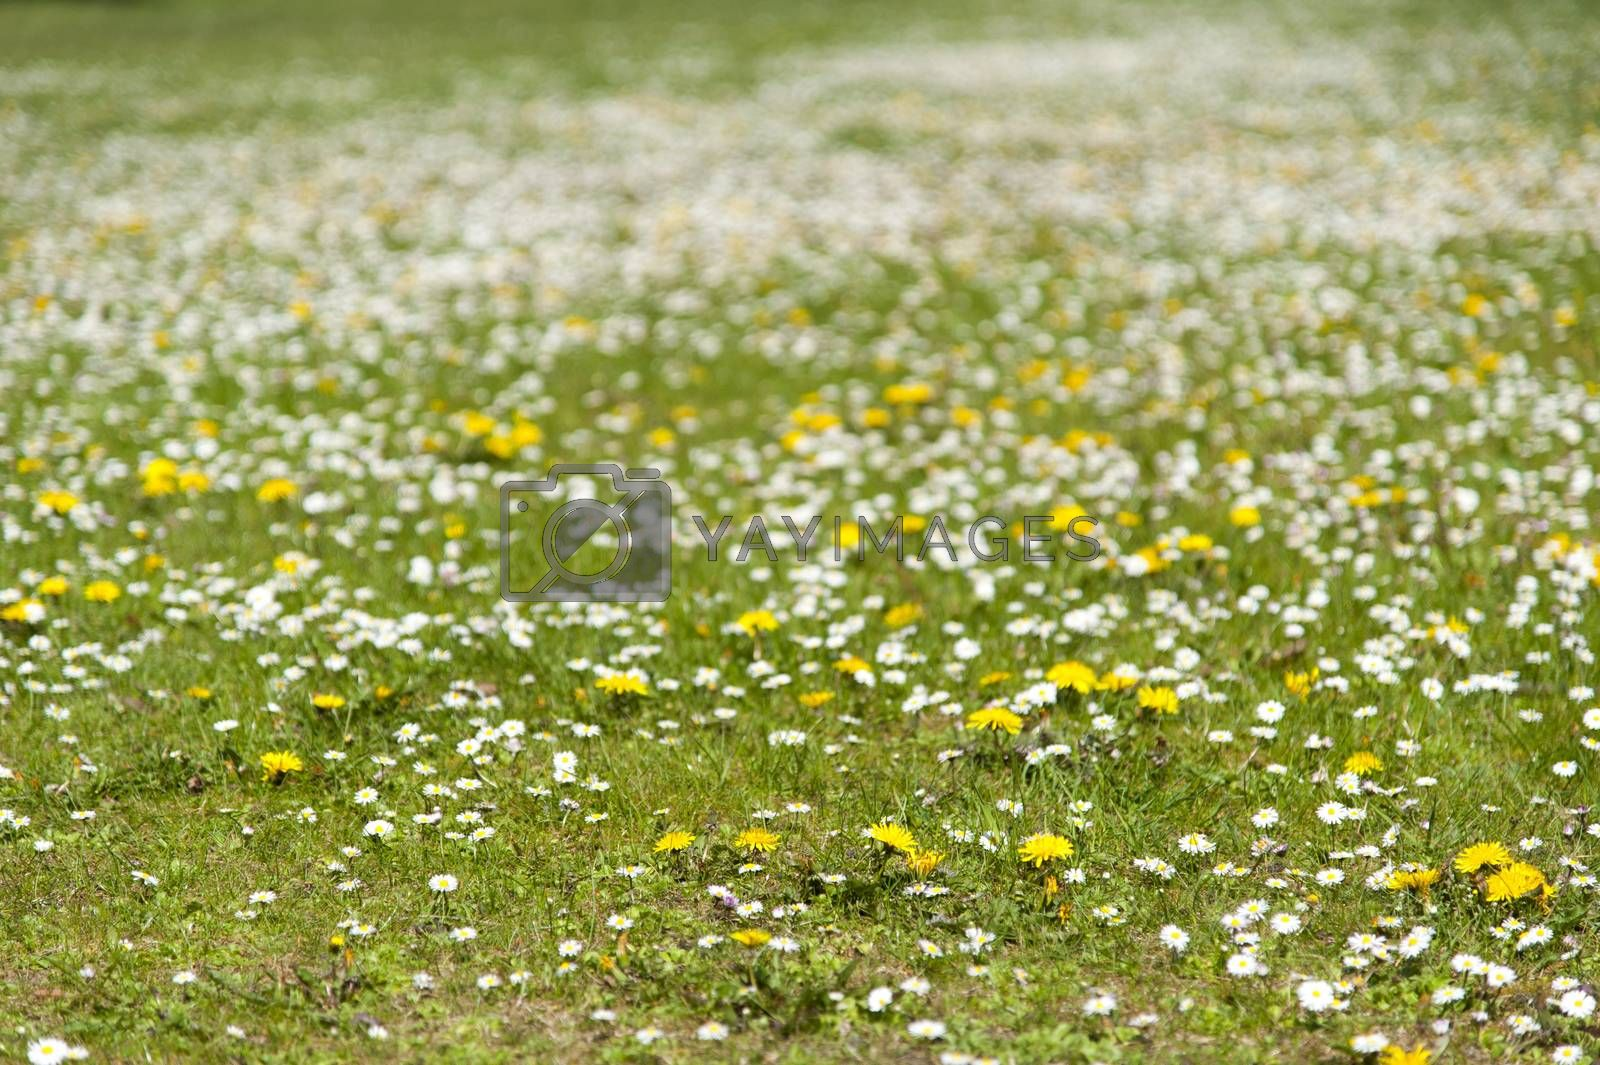 Green meadow with daisy and dandelion flowers